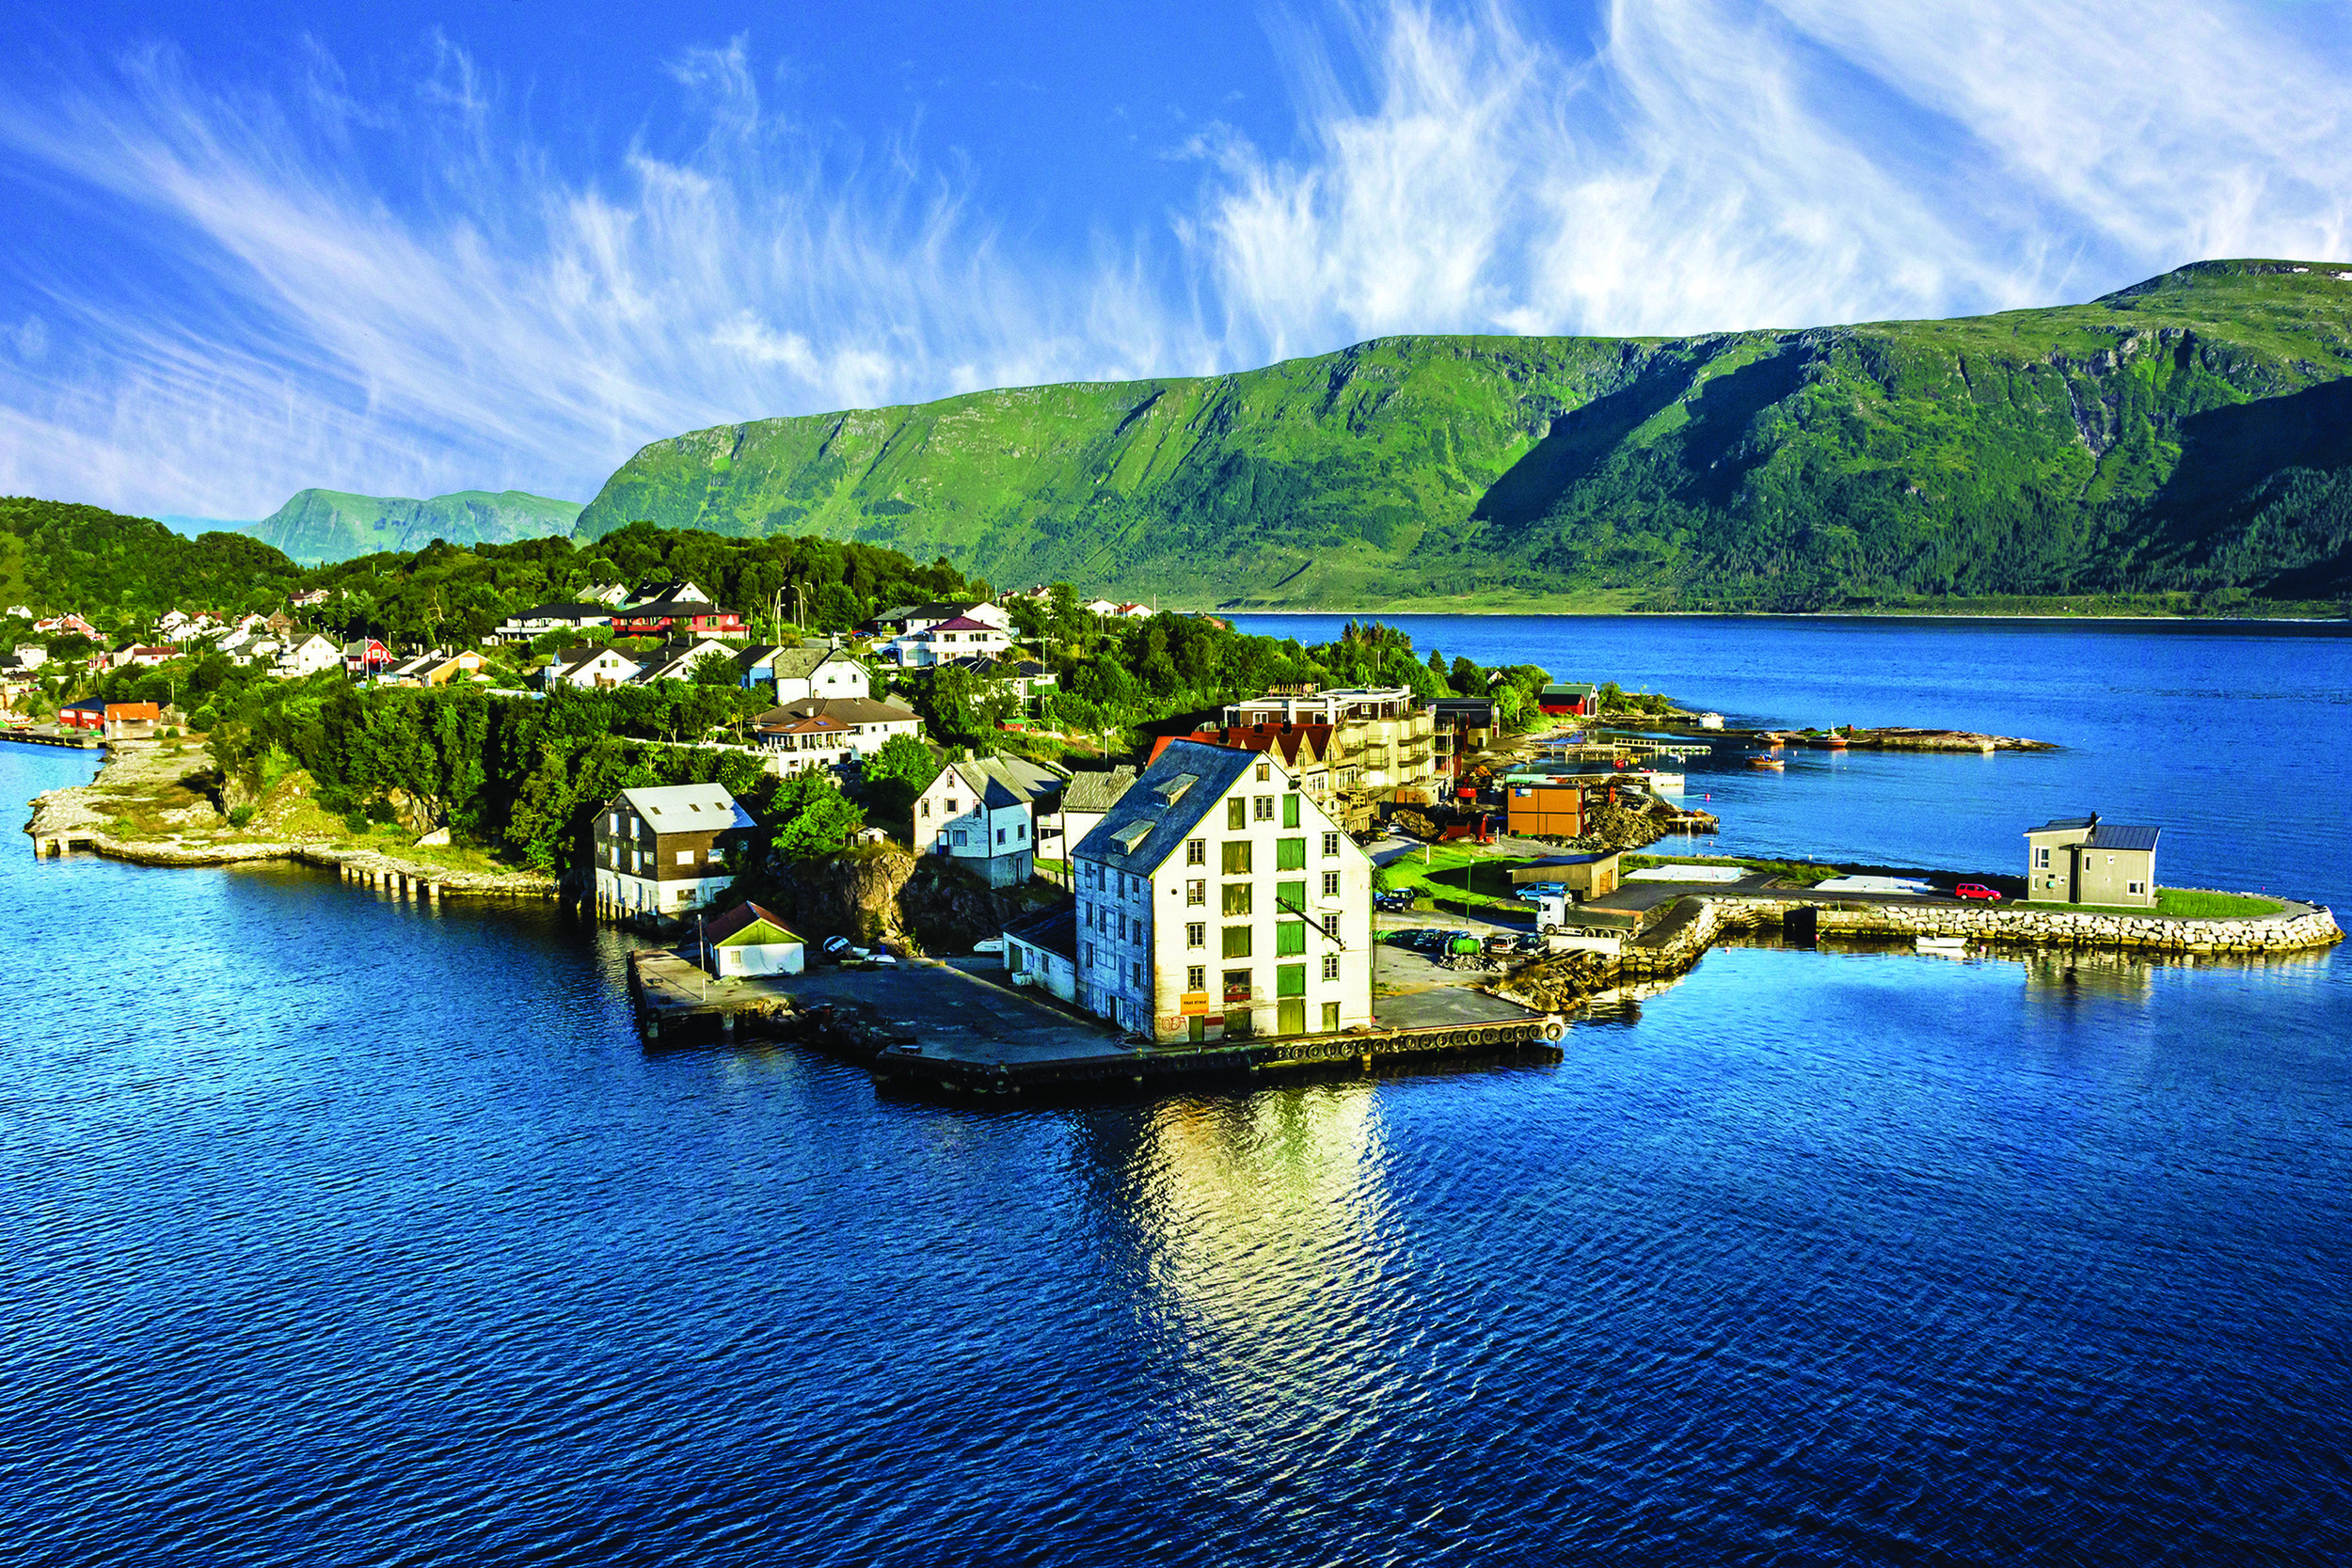 Greenland, Iceland & Norway - Cruise northern oceans and experience natural wonders.